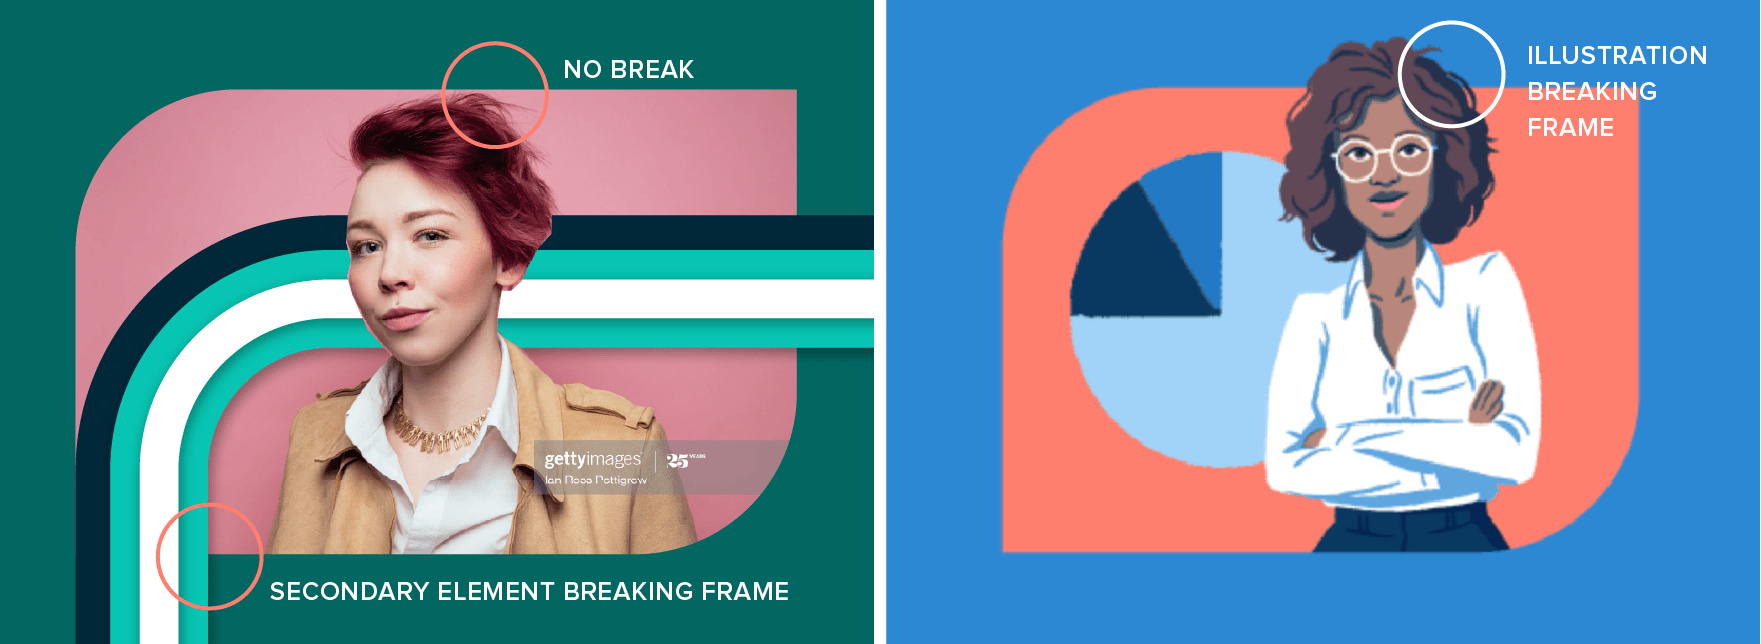 Design where the subject breaks out of the frame